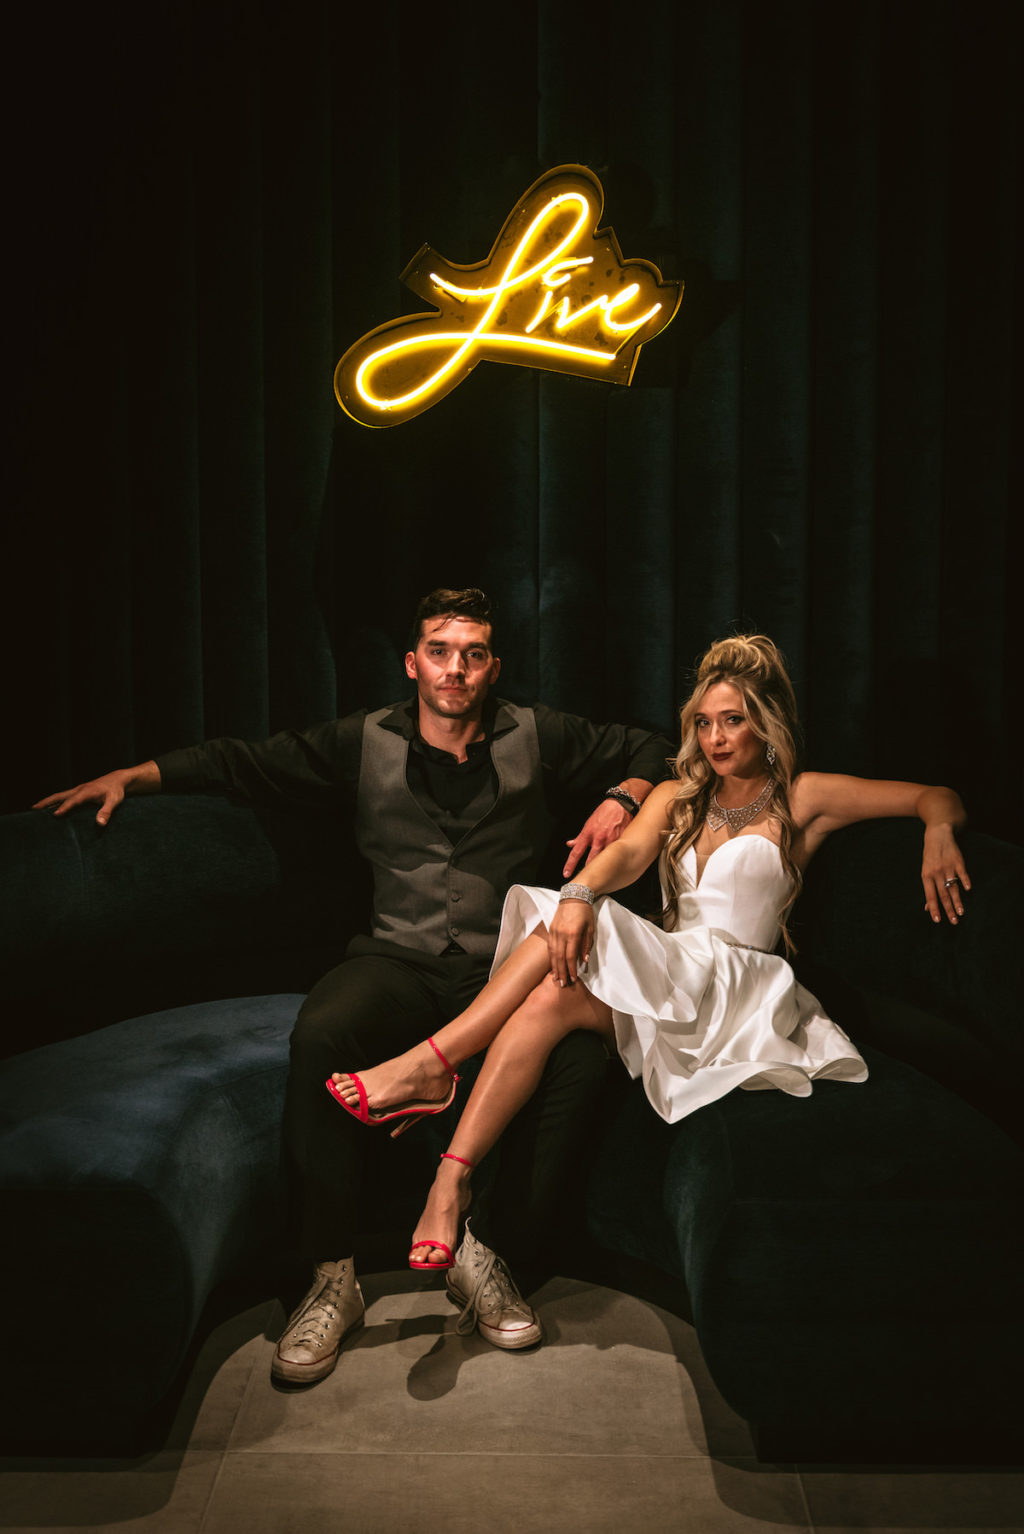 Urban and Edgy Bride in Strapless Short Wedding Dress with Red High Heels, Groom in Black Dress Shirt and Pants with Gray Vest on Couch and Yellow Neon Sign in Backdrop | Tampa Bay Wedding Photographer Bonnie Newman Creative | Wedding Venue Aloft/ Element Midtown Tampa | Wedding Designer and Planner UNIQUE Weddings + Events | Wedding Lighting Spark Wedding Events | Wedding Rentals A Chair Affair | Wedding Dress Truly Forever Bridal | Wedding Hair and Makeup Adore Bridal Services | Wedding Jewelry Accessories International Diamond Center